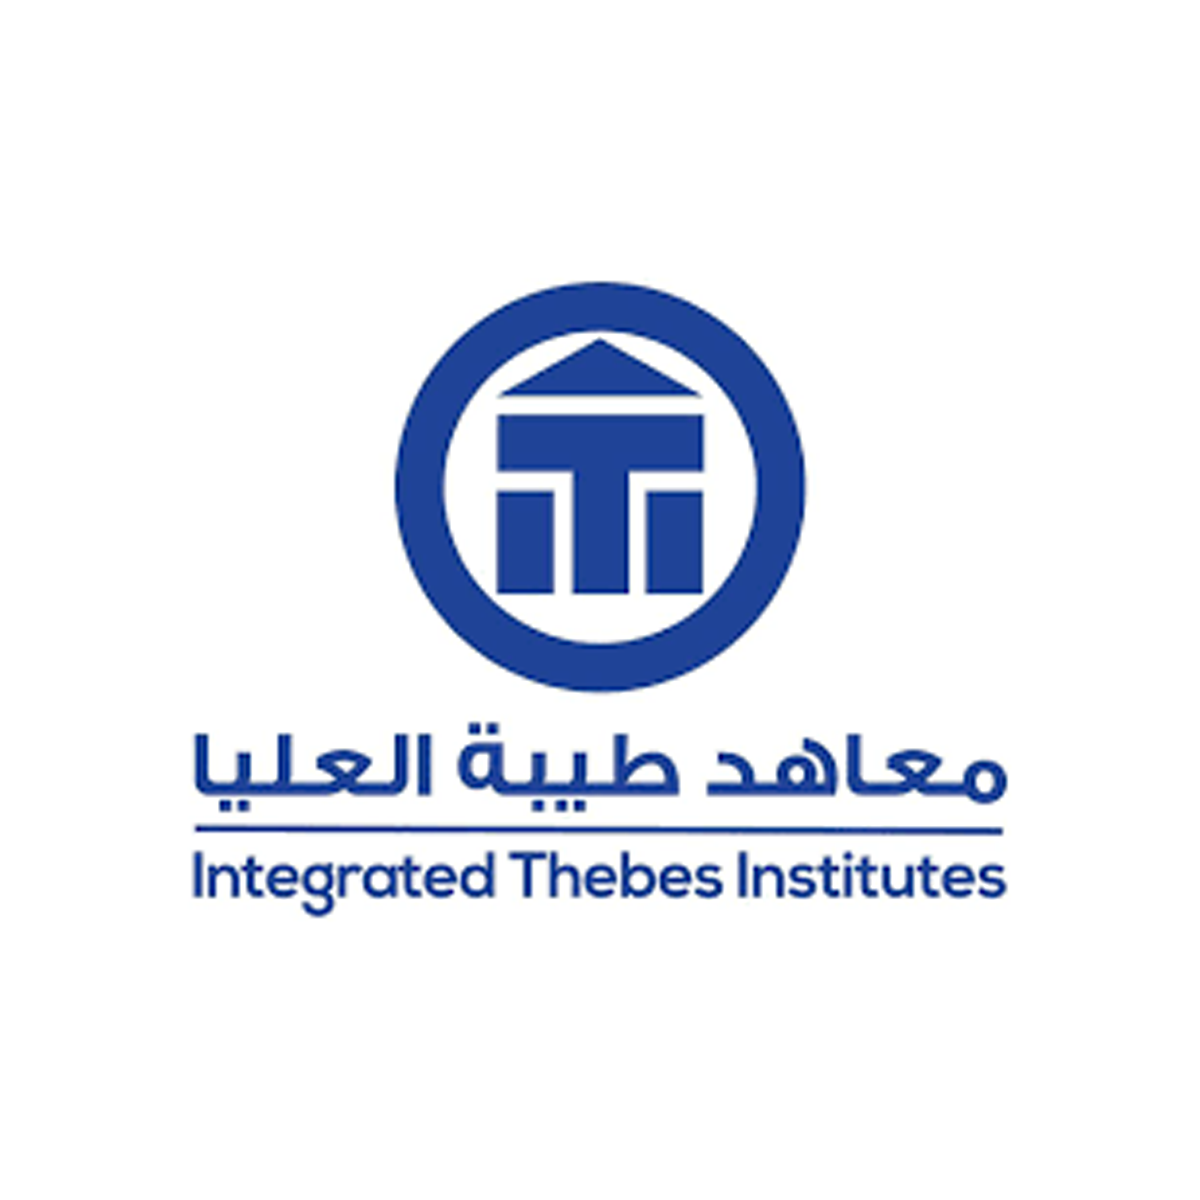 Thebes Higher Institute for Computer and Administrative Sciences - Maadi, Cairo